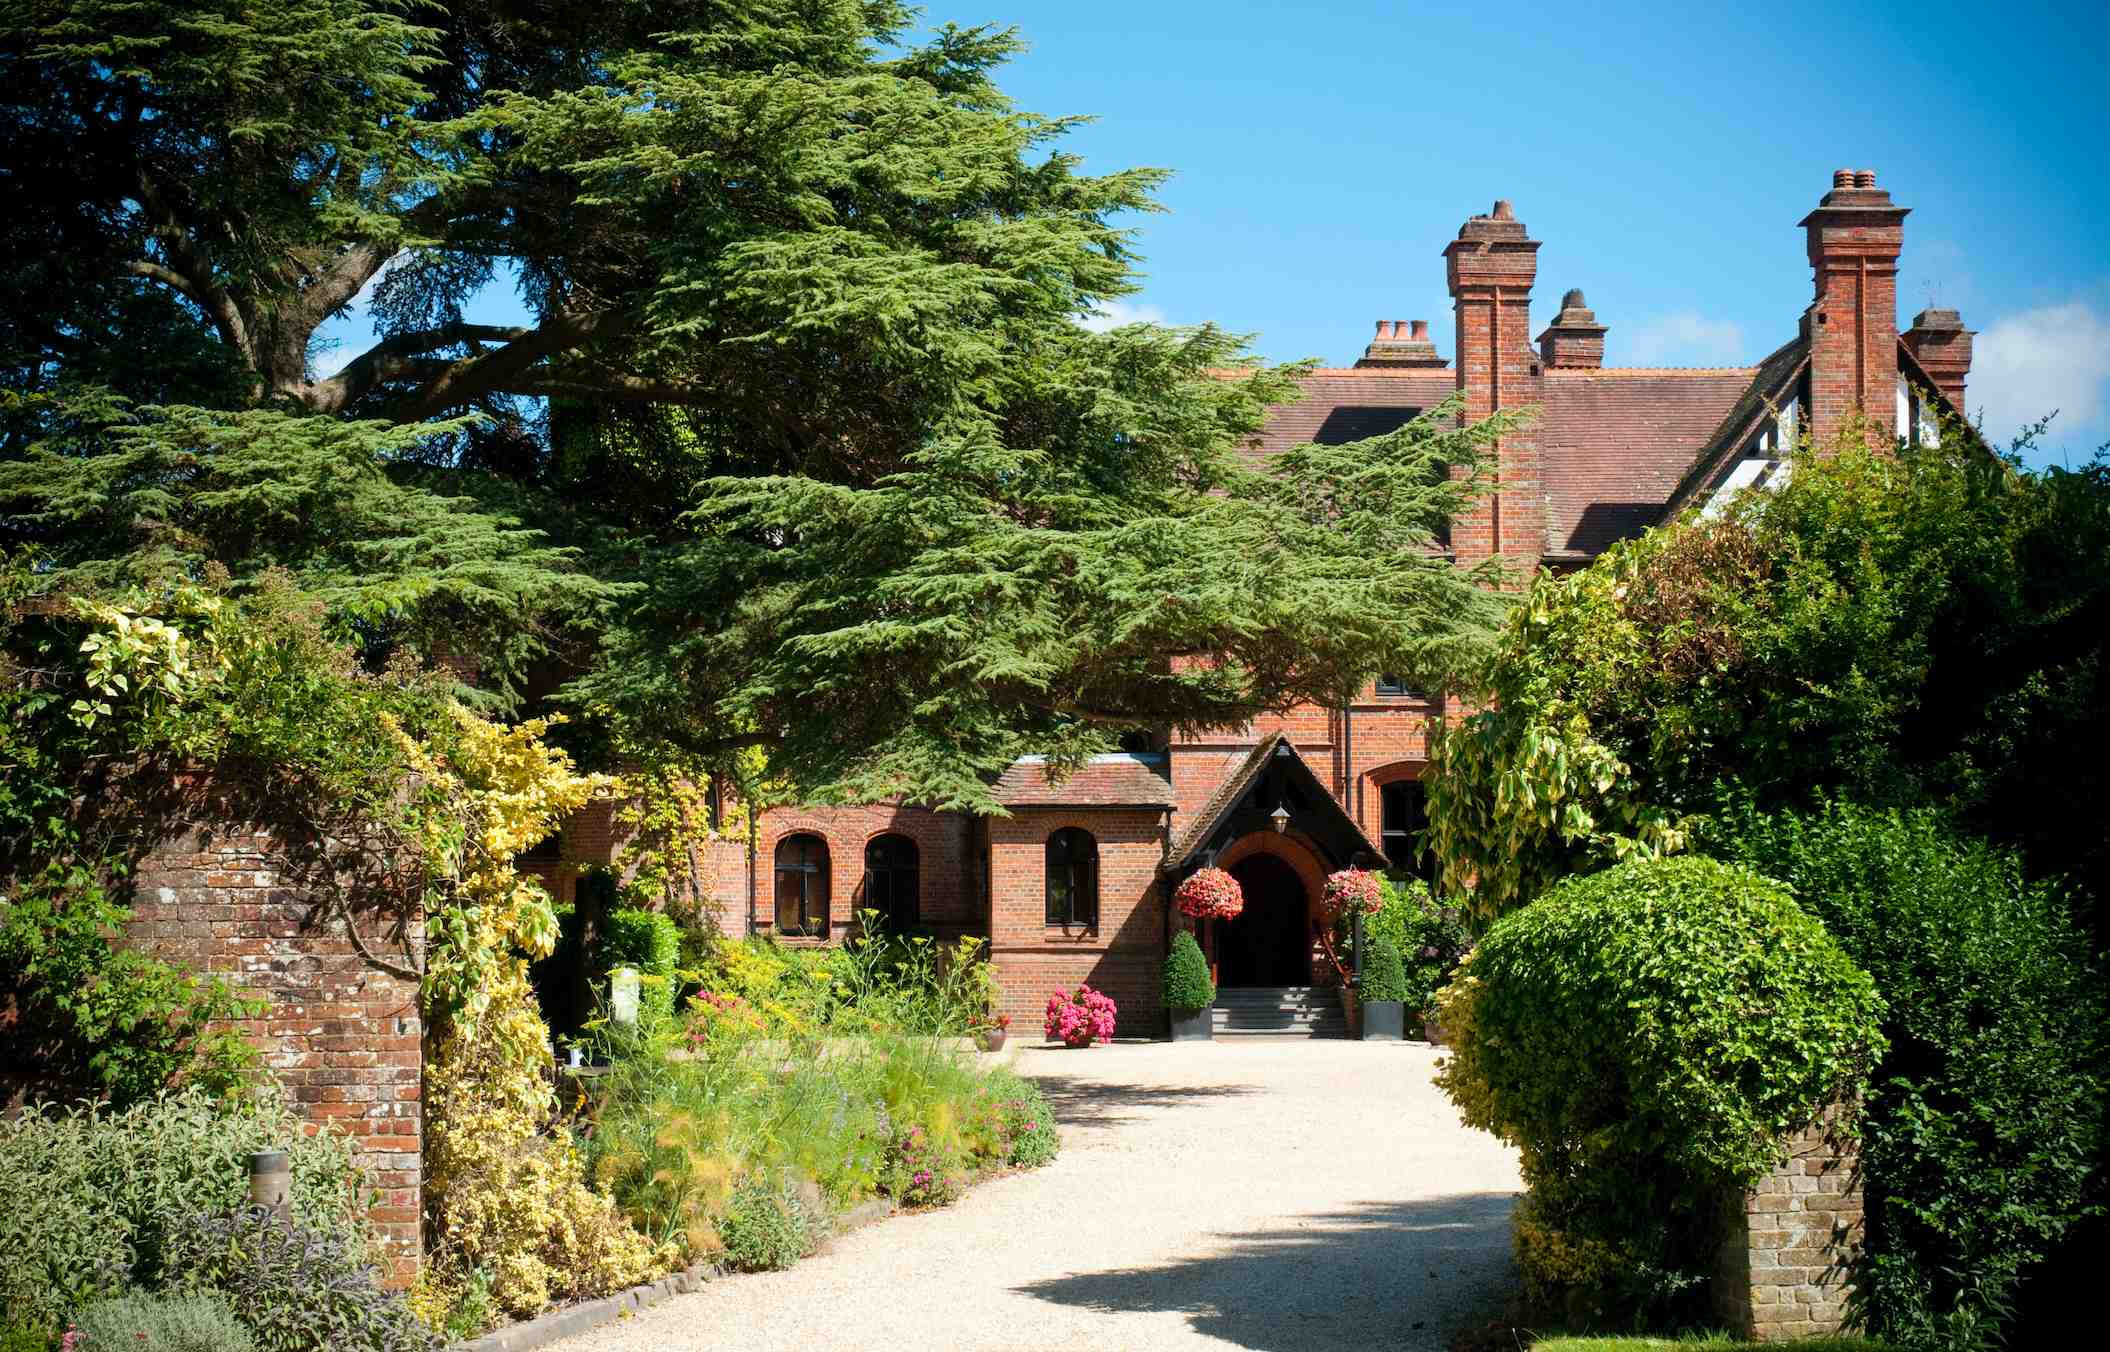 Careys Manor in the New Forest